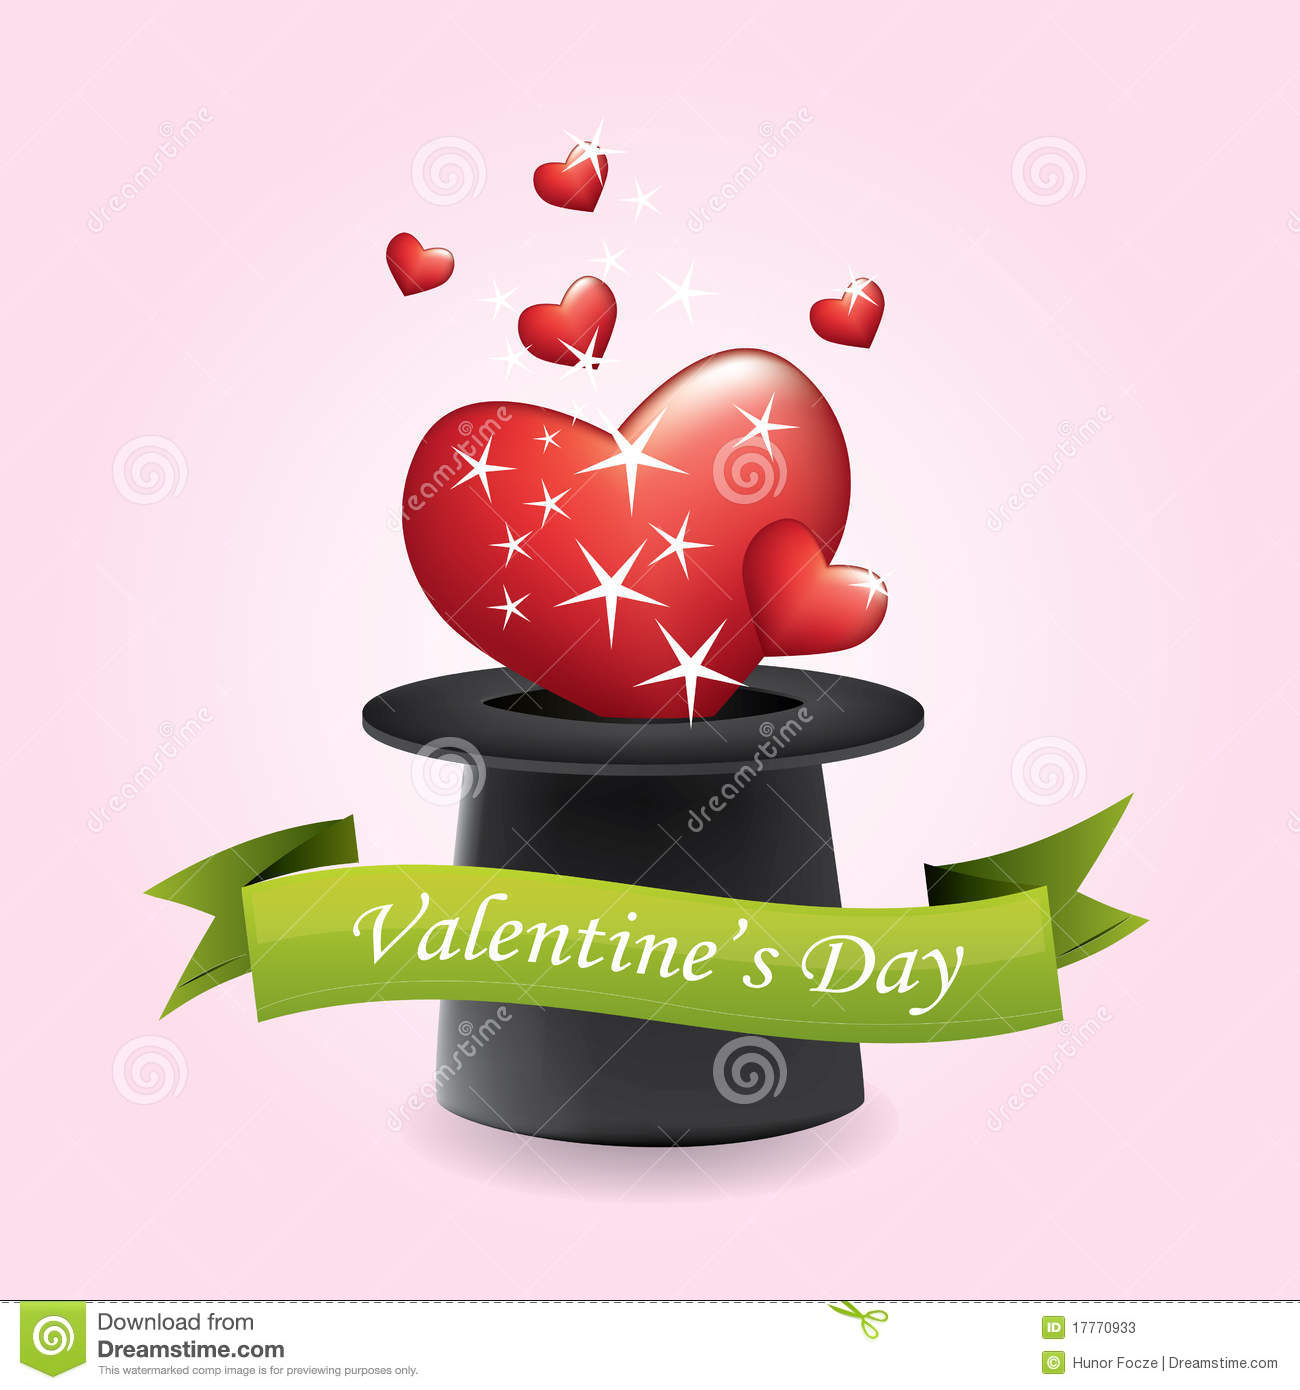 Magic Hat And Hearts - Valentine's Day Stock Photos - Image: 17770933